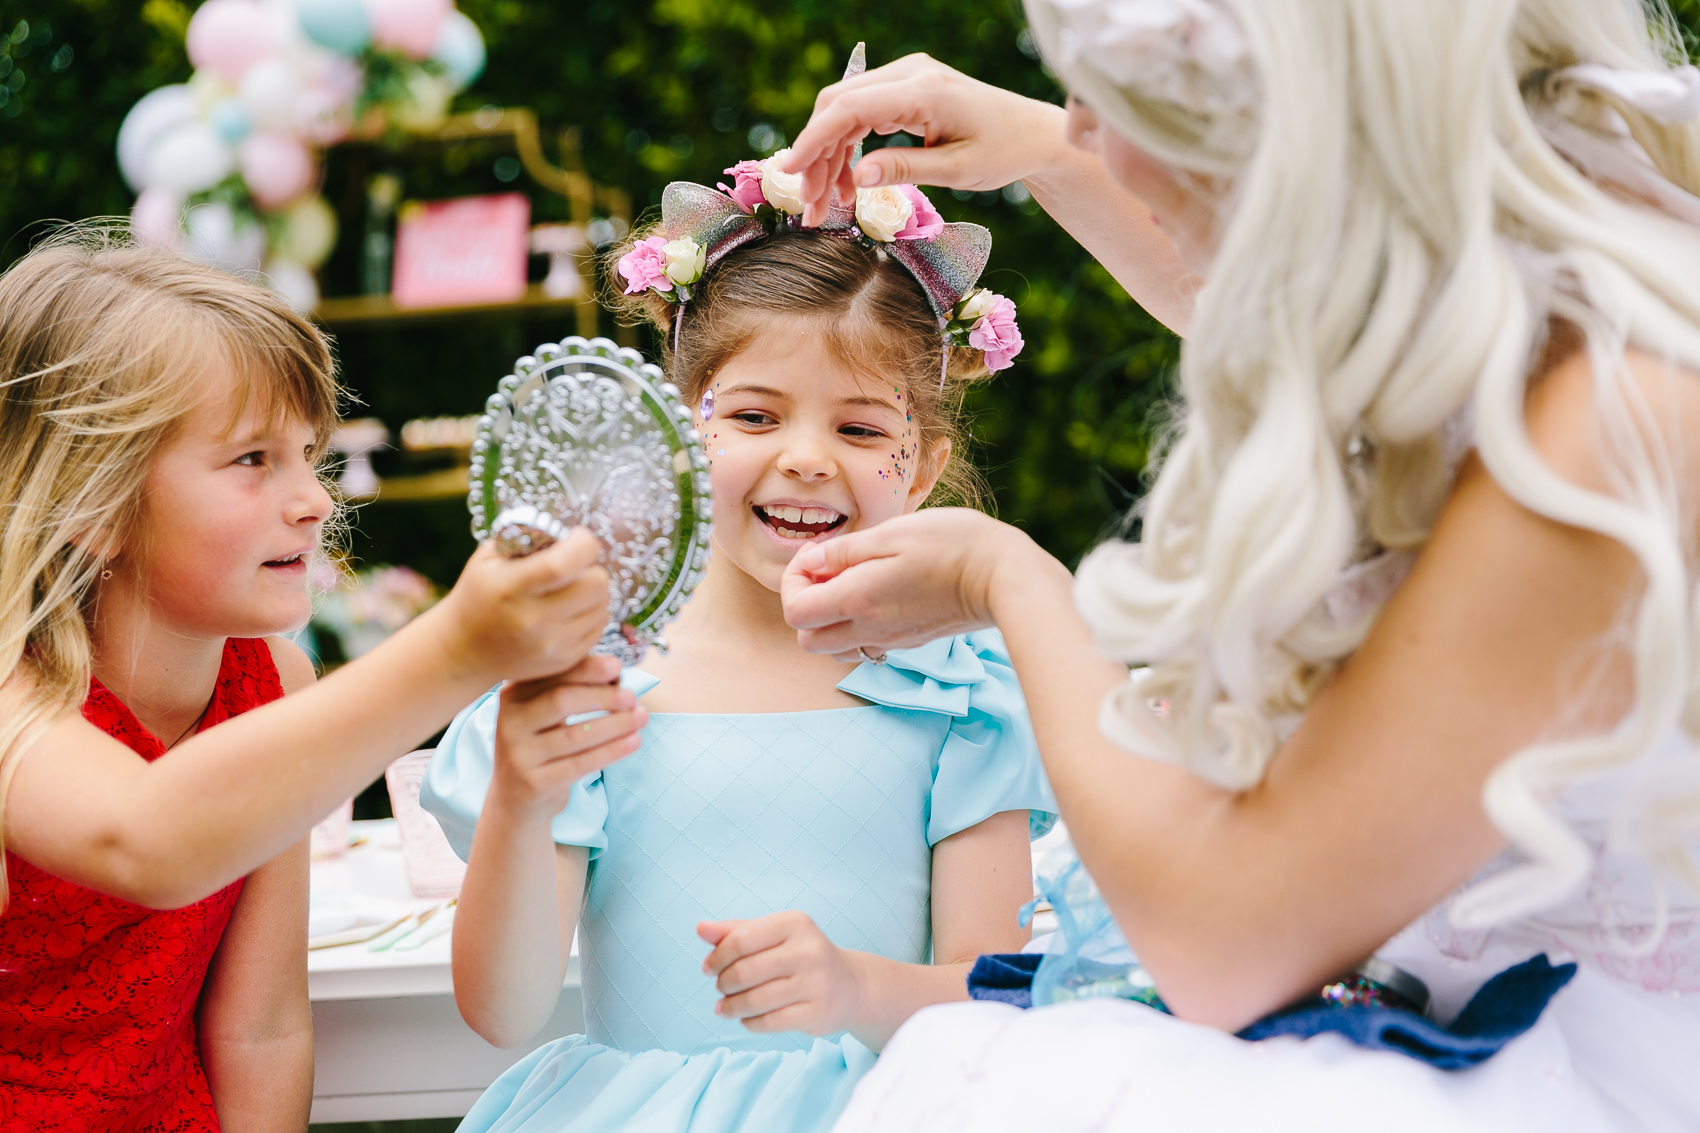 Los_Angeles_Family_Photographer_Luxury_Childrens_Party_Beverly_Hills_Unicorn_Birthday_Party-0878.jpg